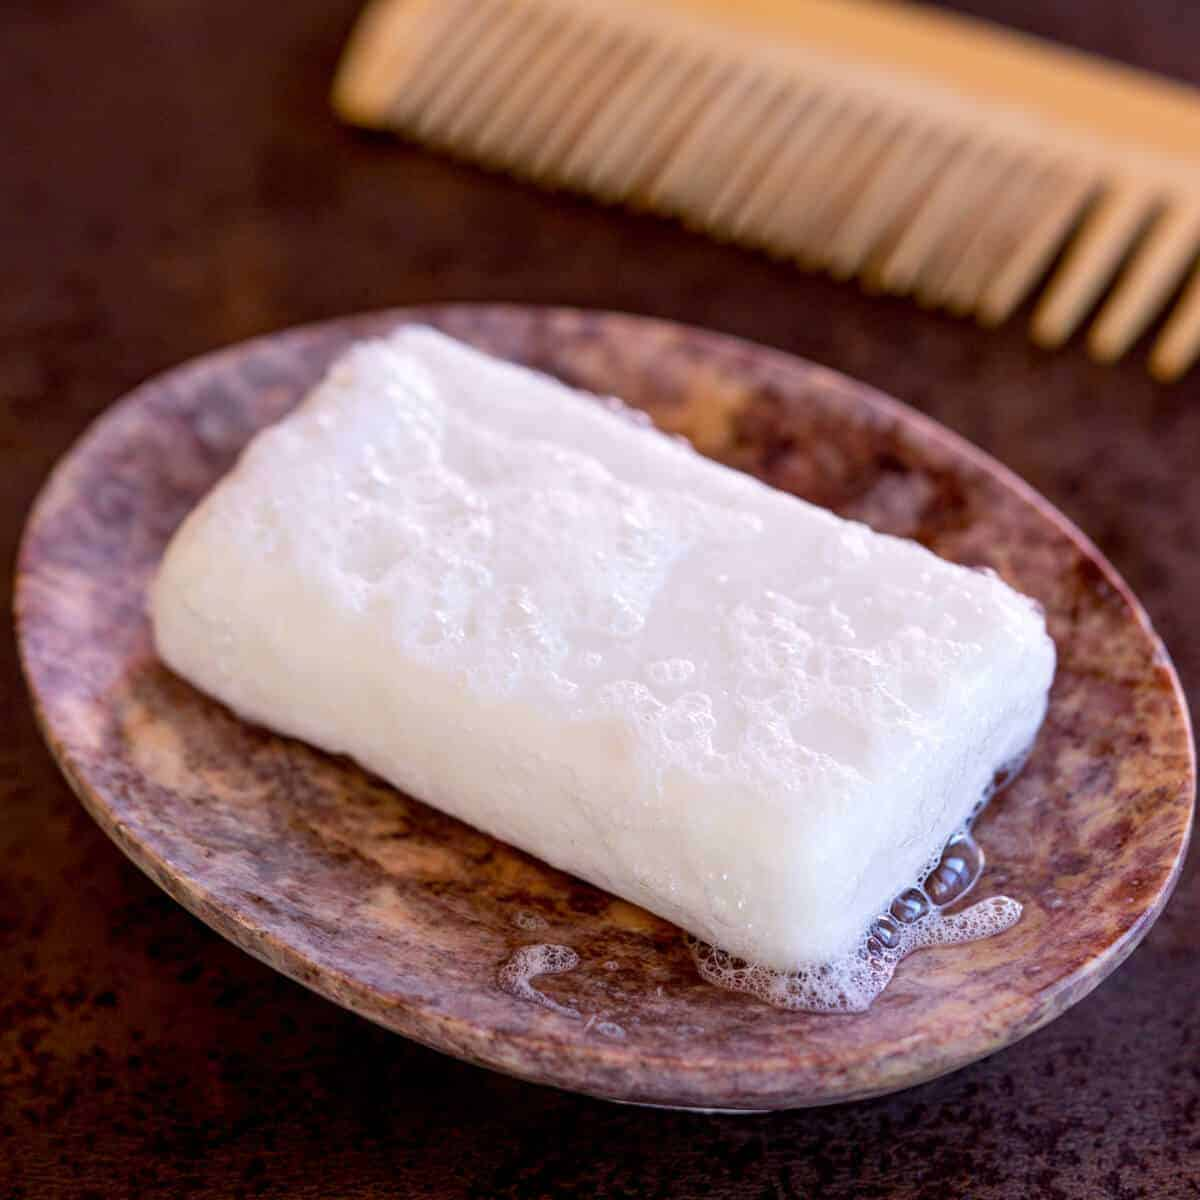 A homemade shampoo bar in a stone soap dish next to a wooden comb